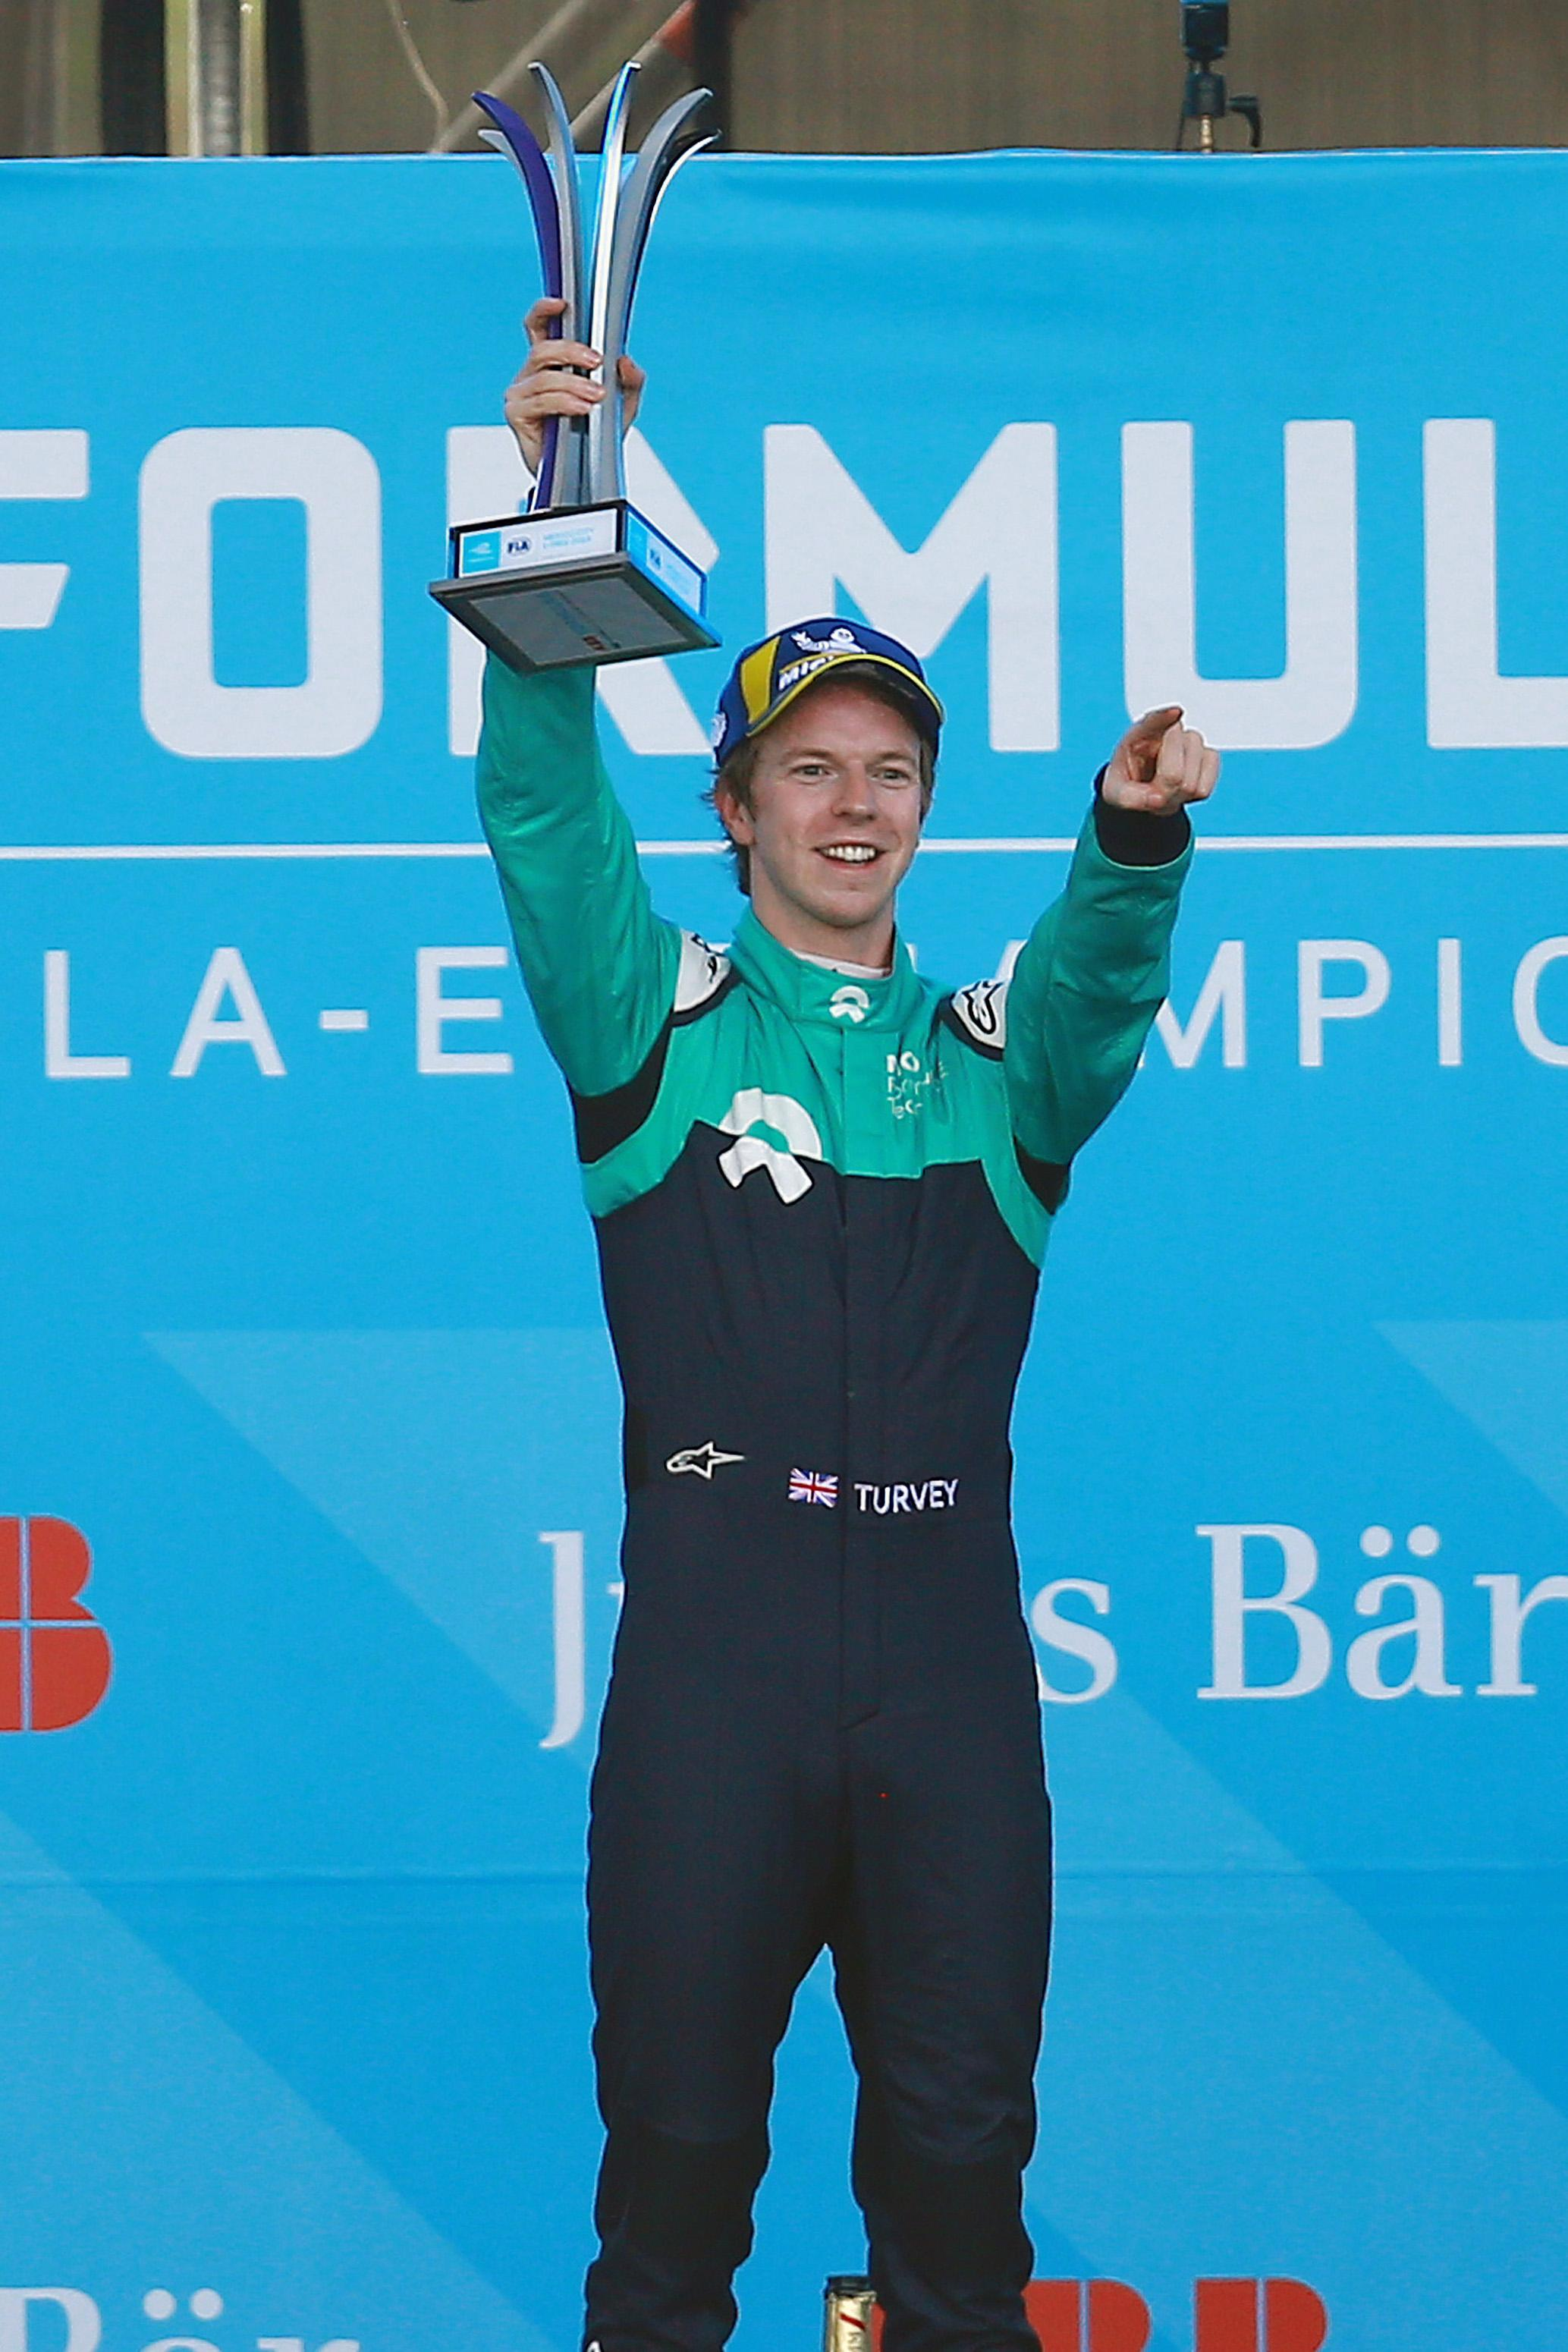 Oliver Turvey was on the podium for the first time in Formula E